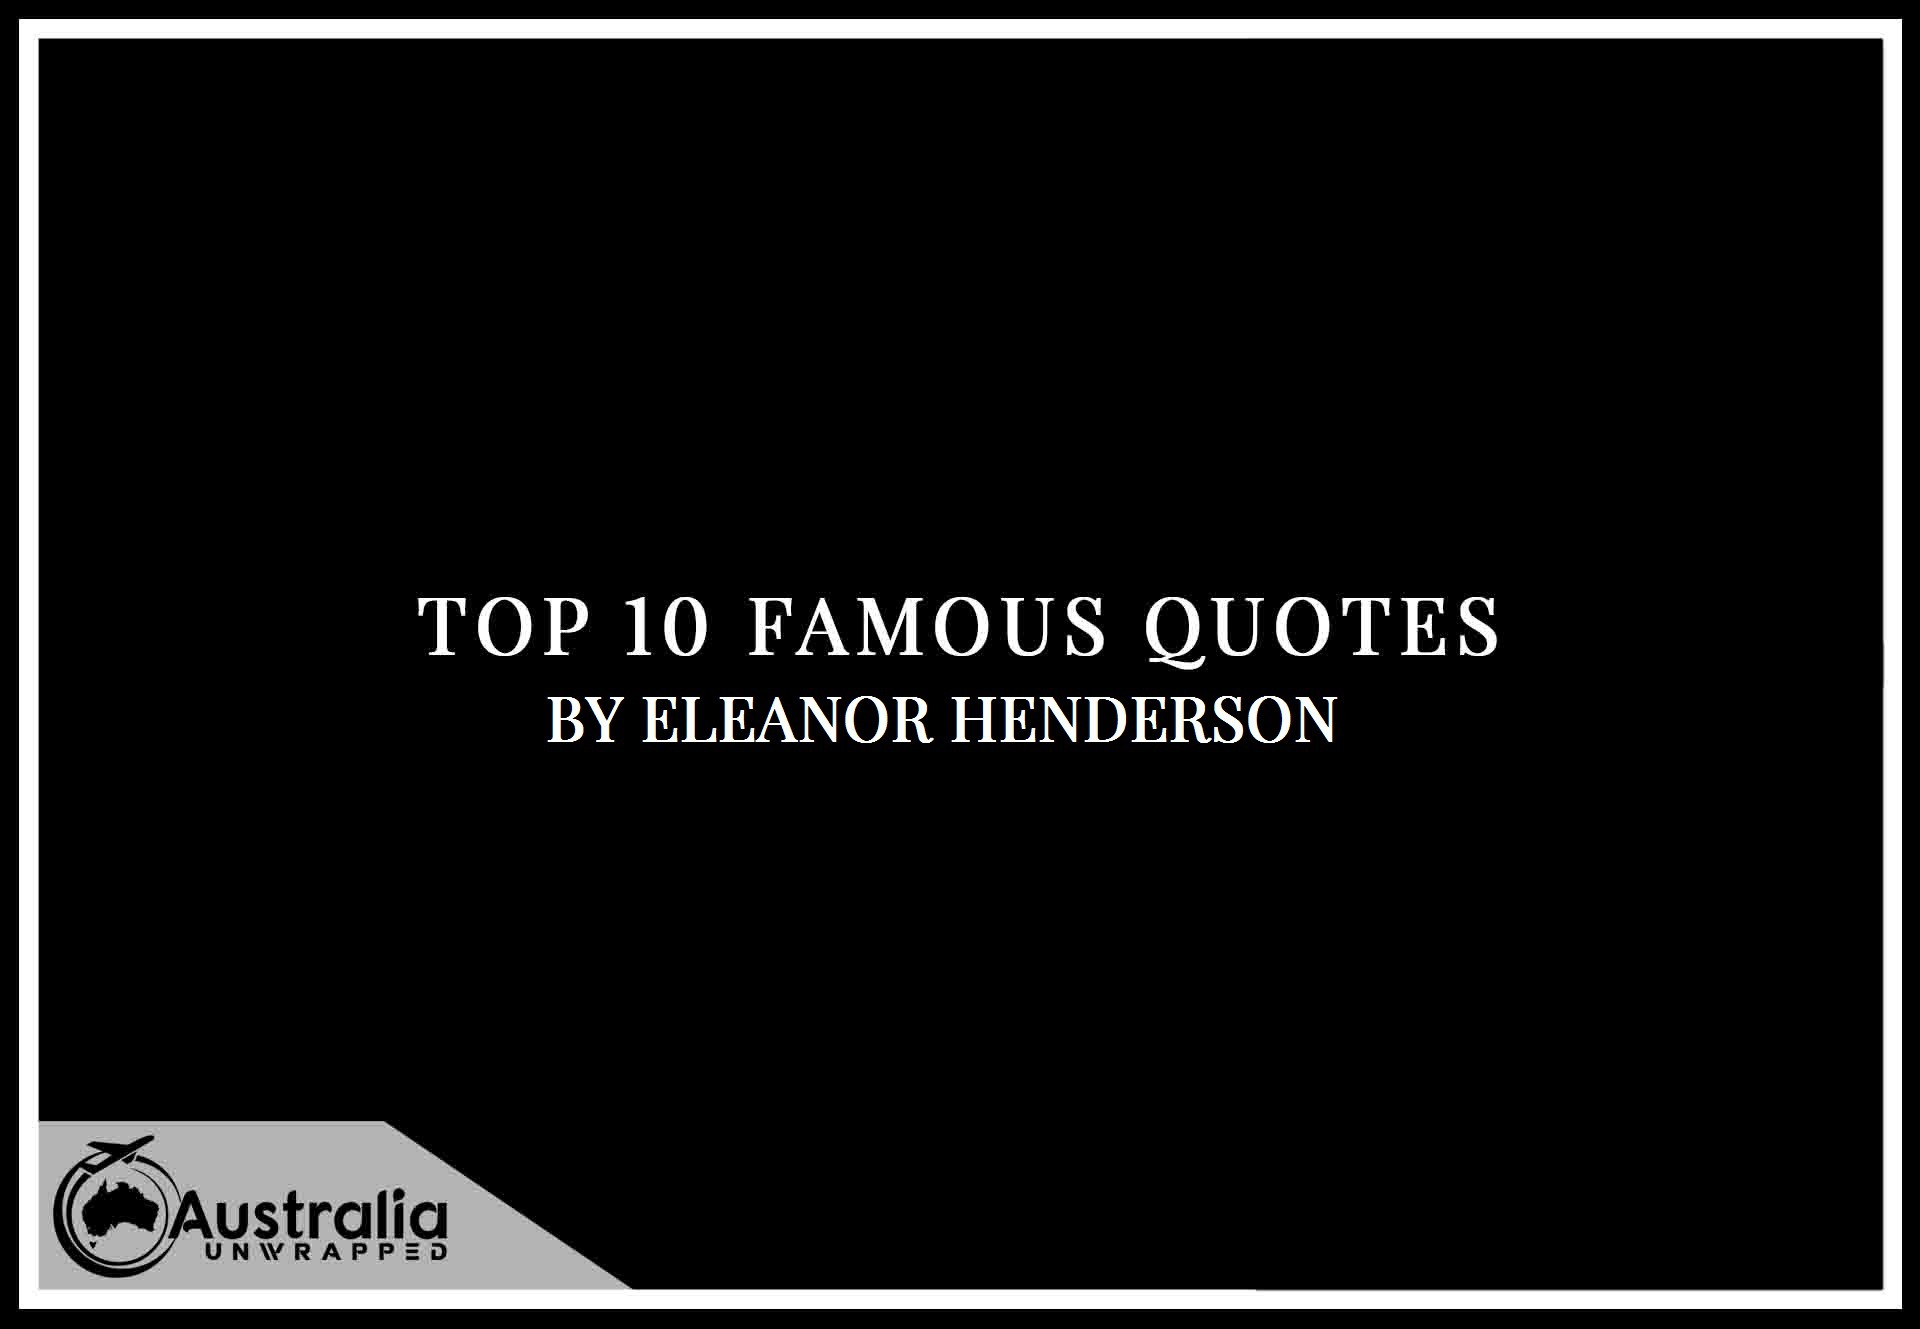 Eleanor Henderson's Top 10 Popular and Famous Quotes